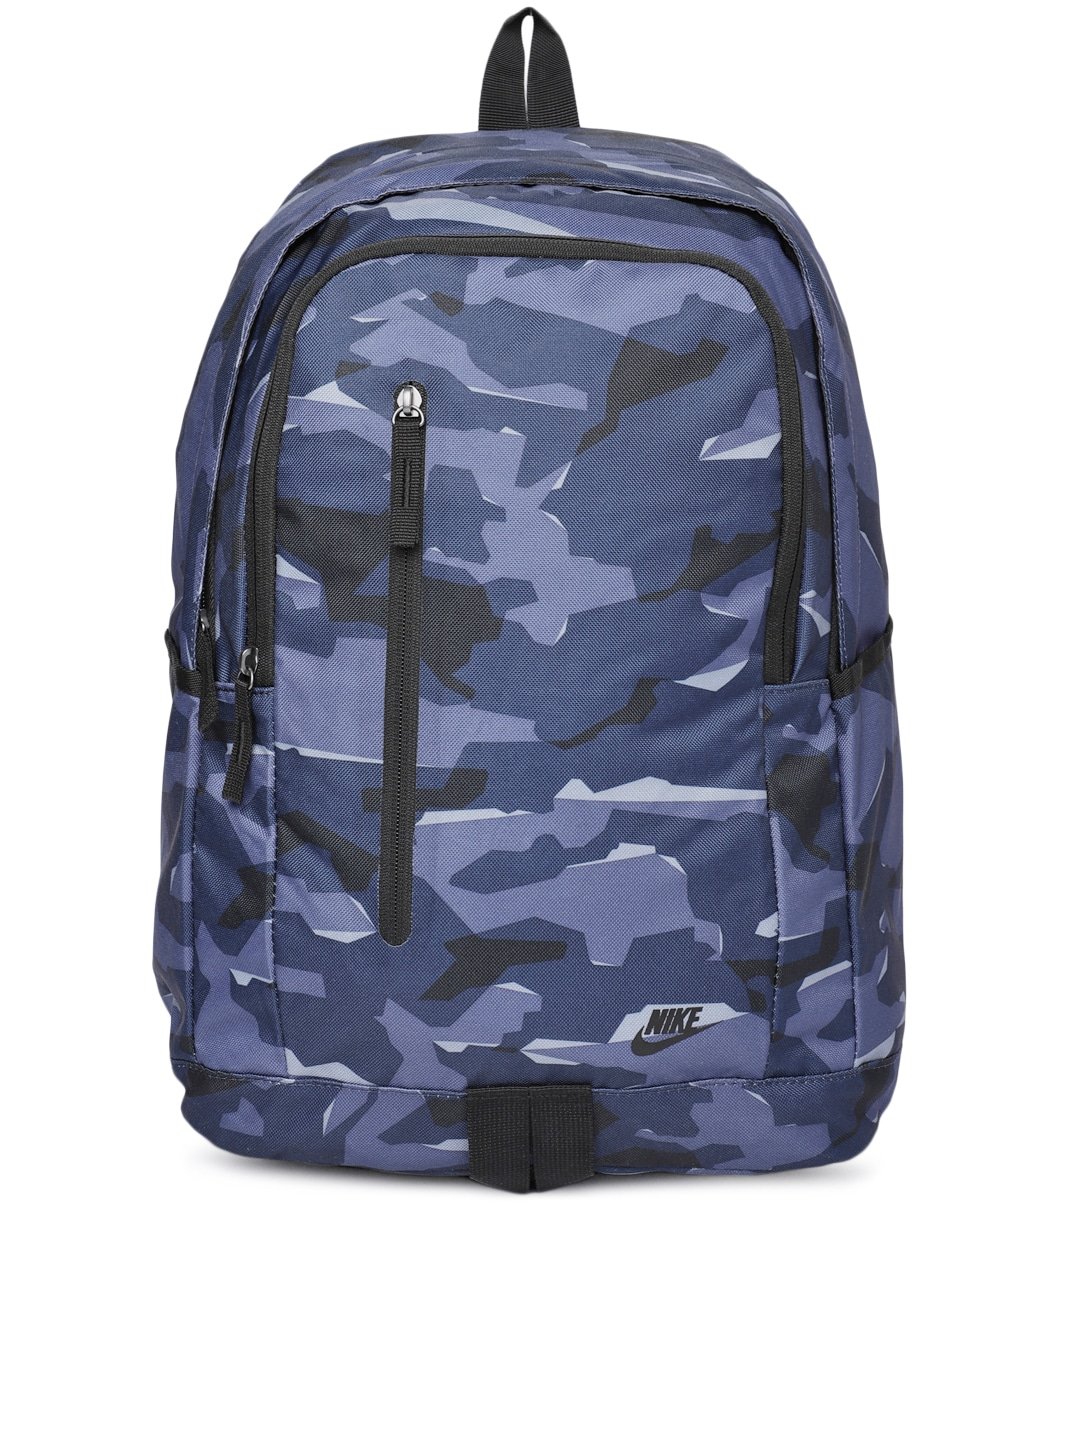 Nike Unisex Blue Backpack 0df7edd17db38